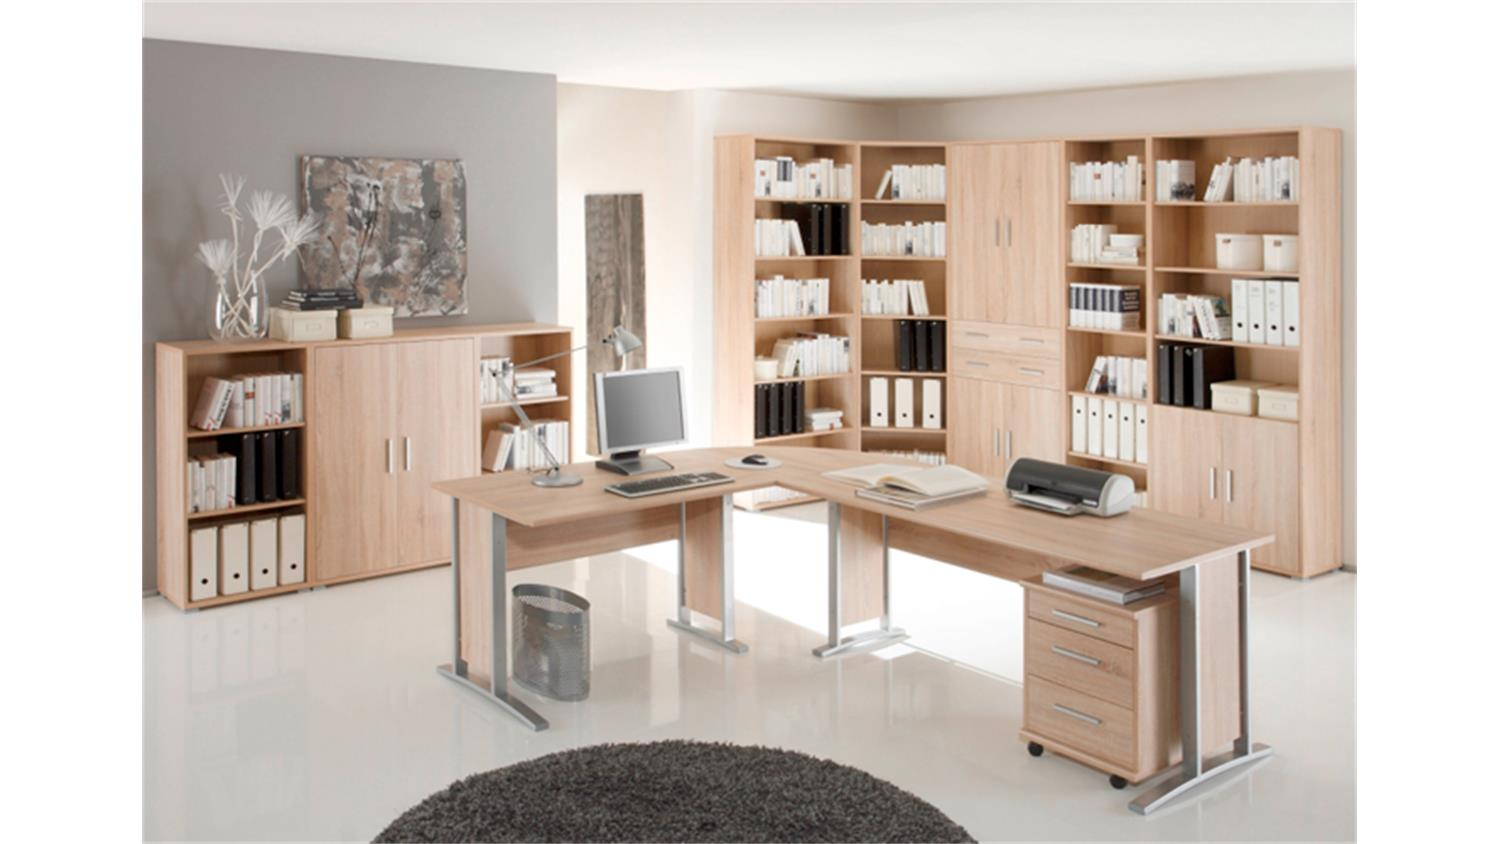 aktenschrank office line sonoma eiche 2 t ren. Black Bedroom Furniture Sets. Home Design Ideas